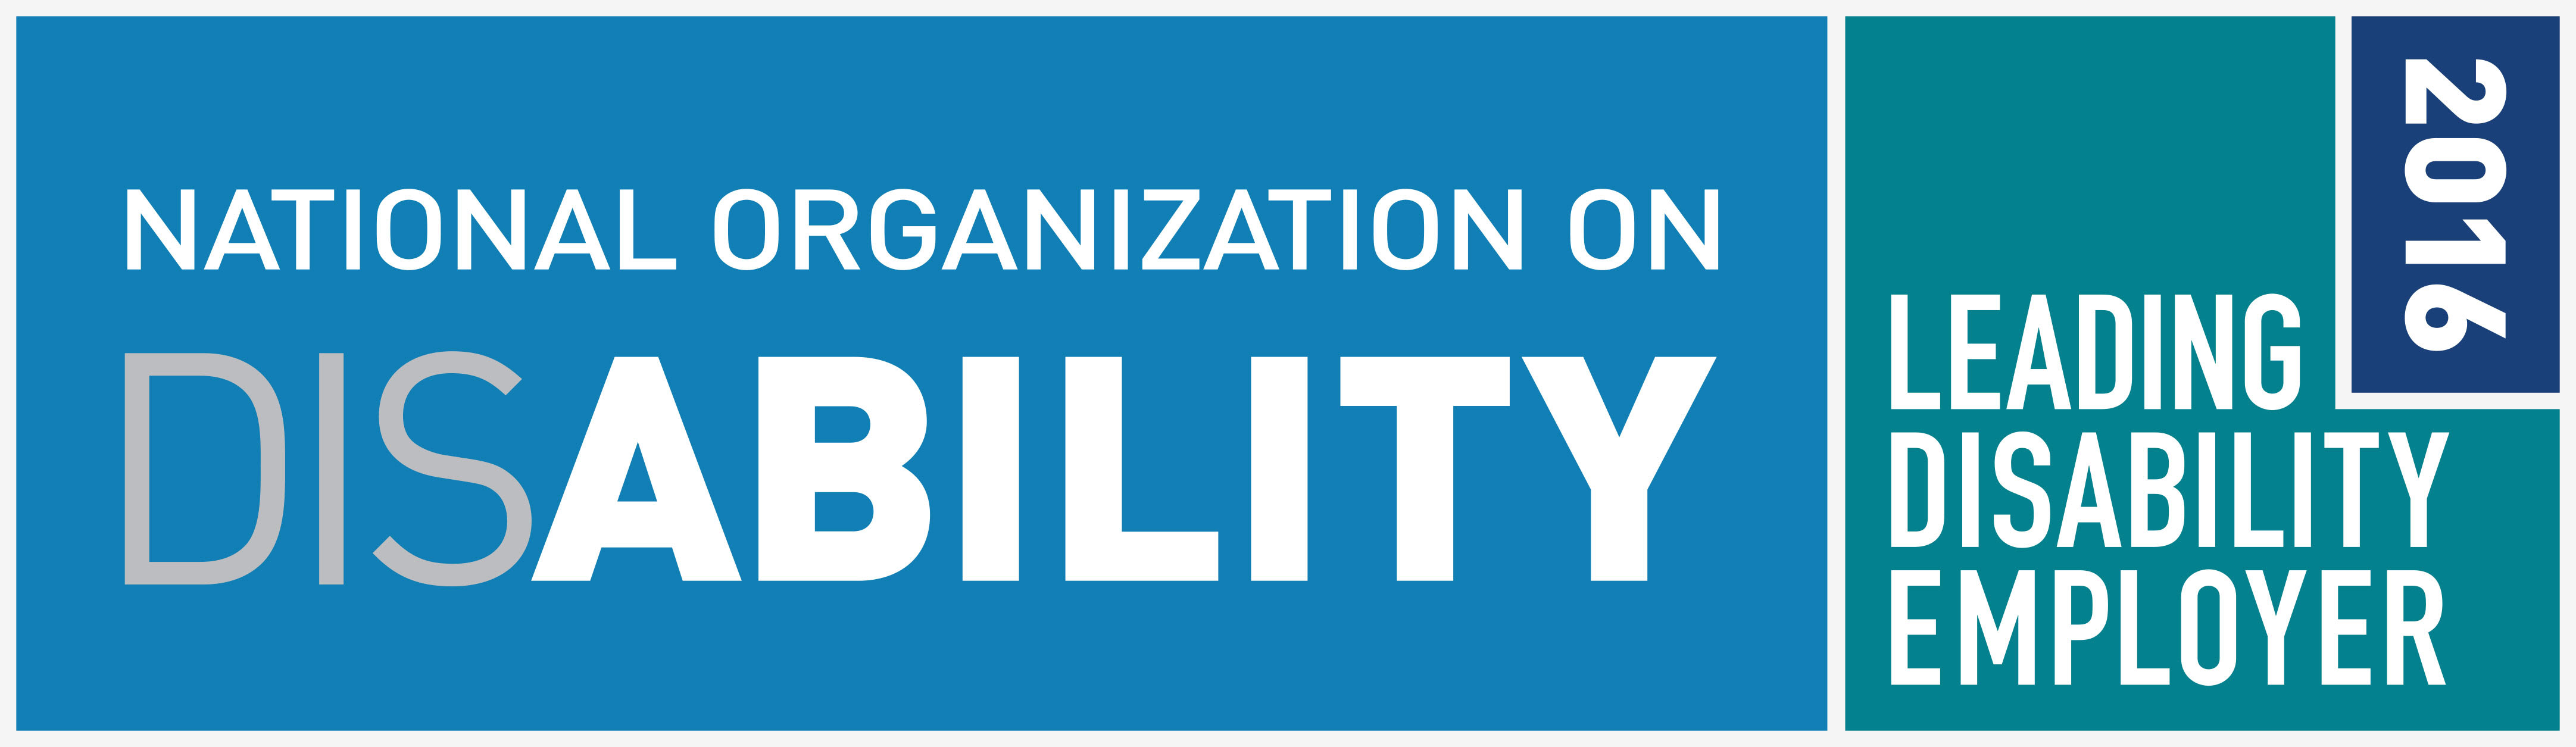 National organization on disability. 2016 leading disability employer.